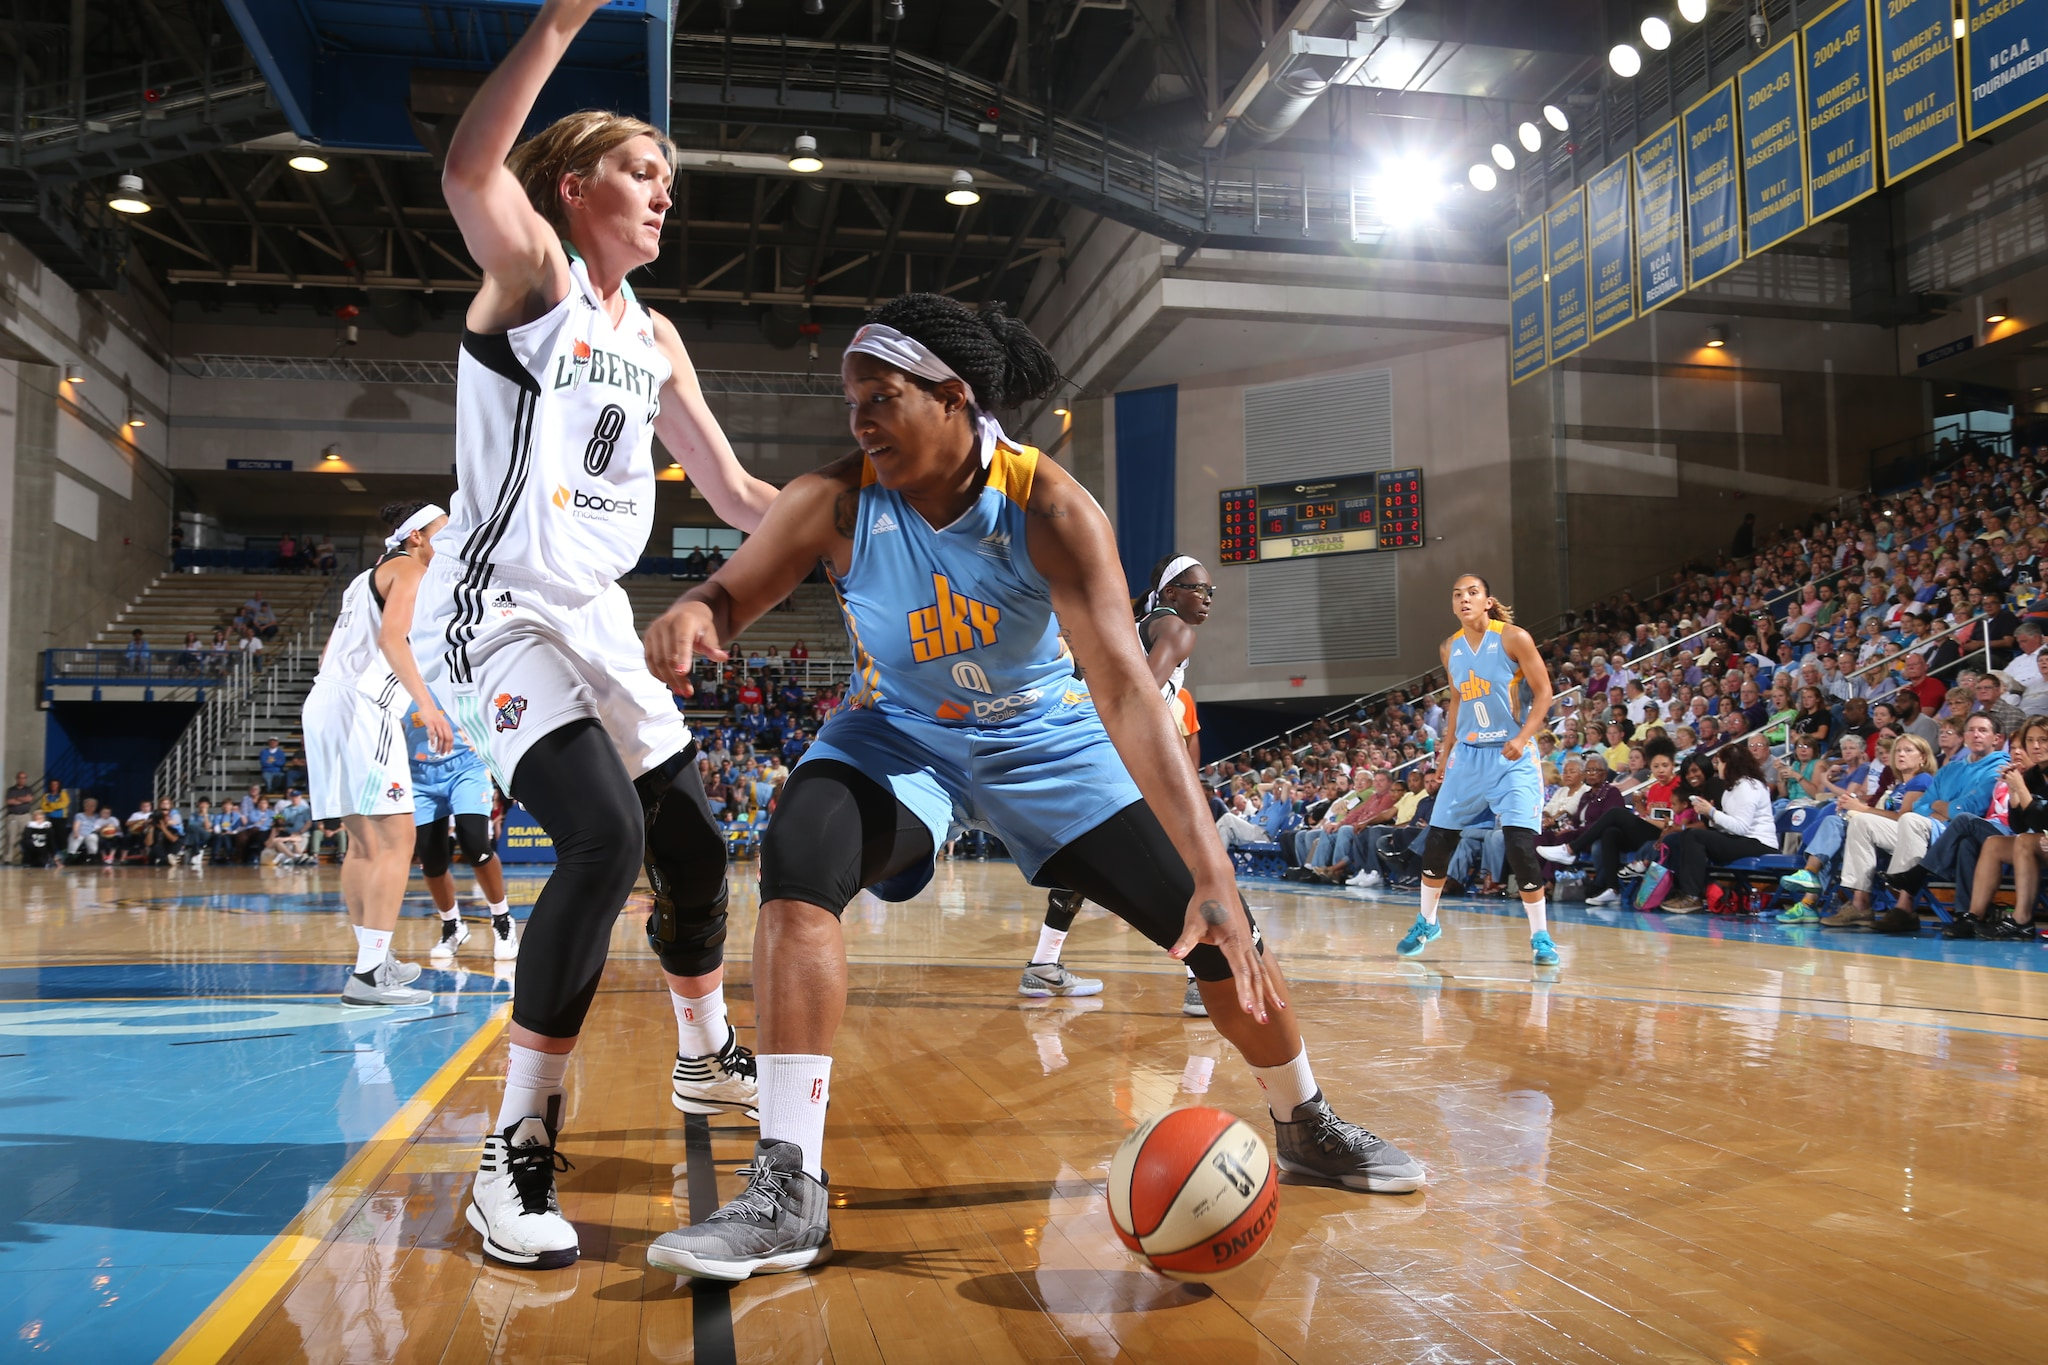 Markeisha Gatling #9 of the Chicago Sky handles the ball against the New York Liberty at the Bob Carpenter Center in Newark, DE on May 22.